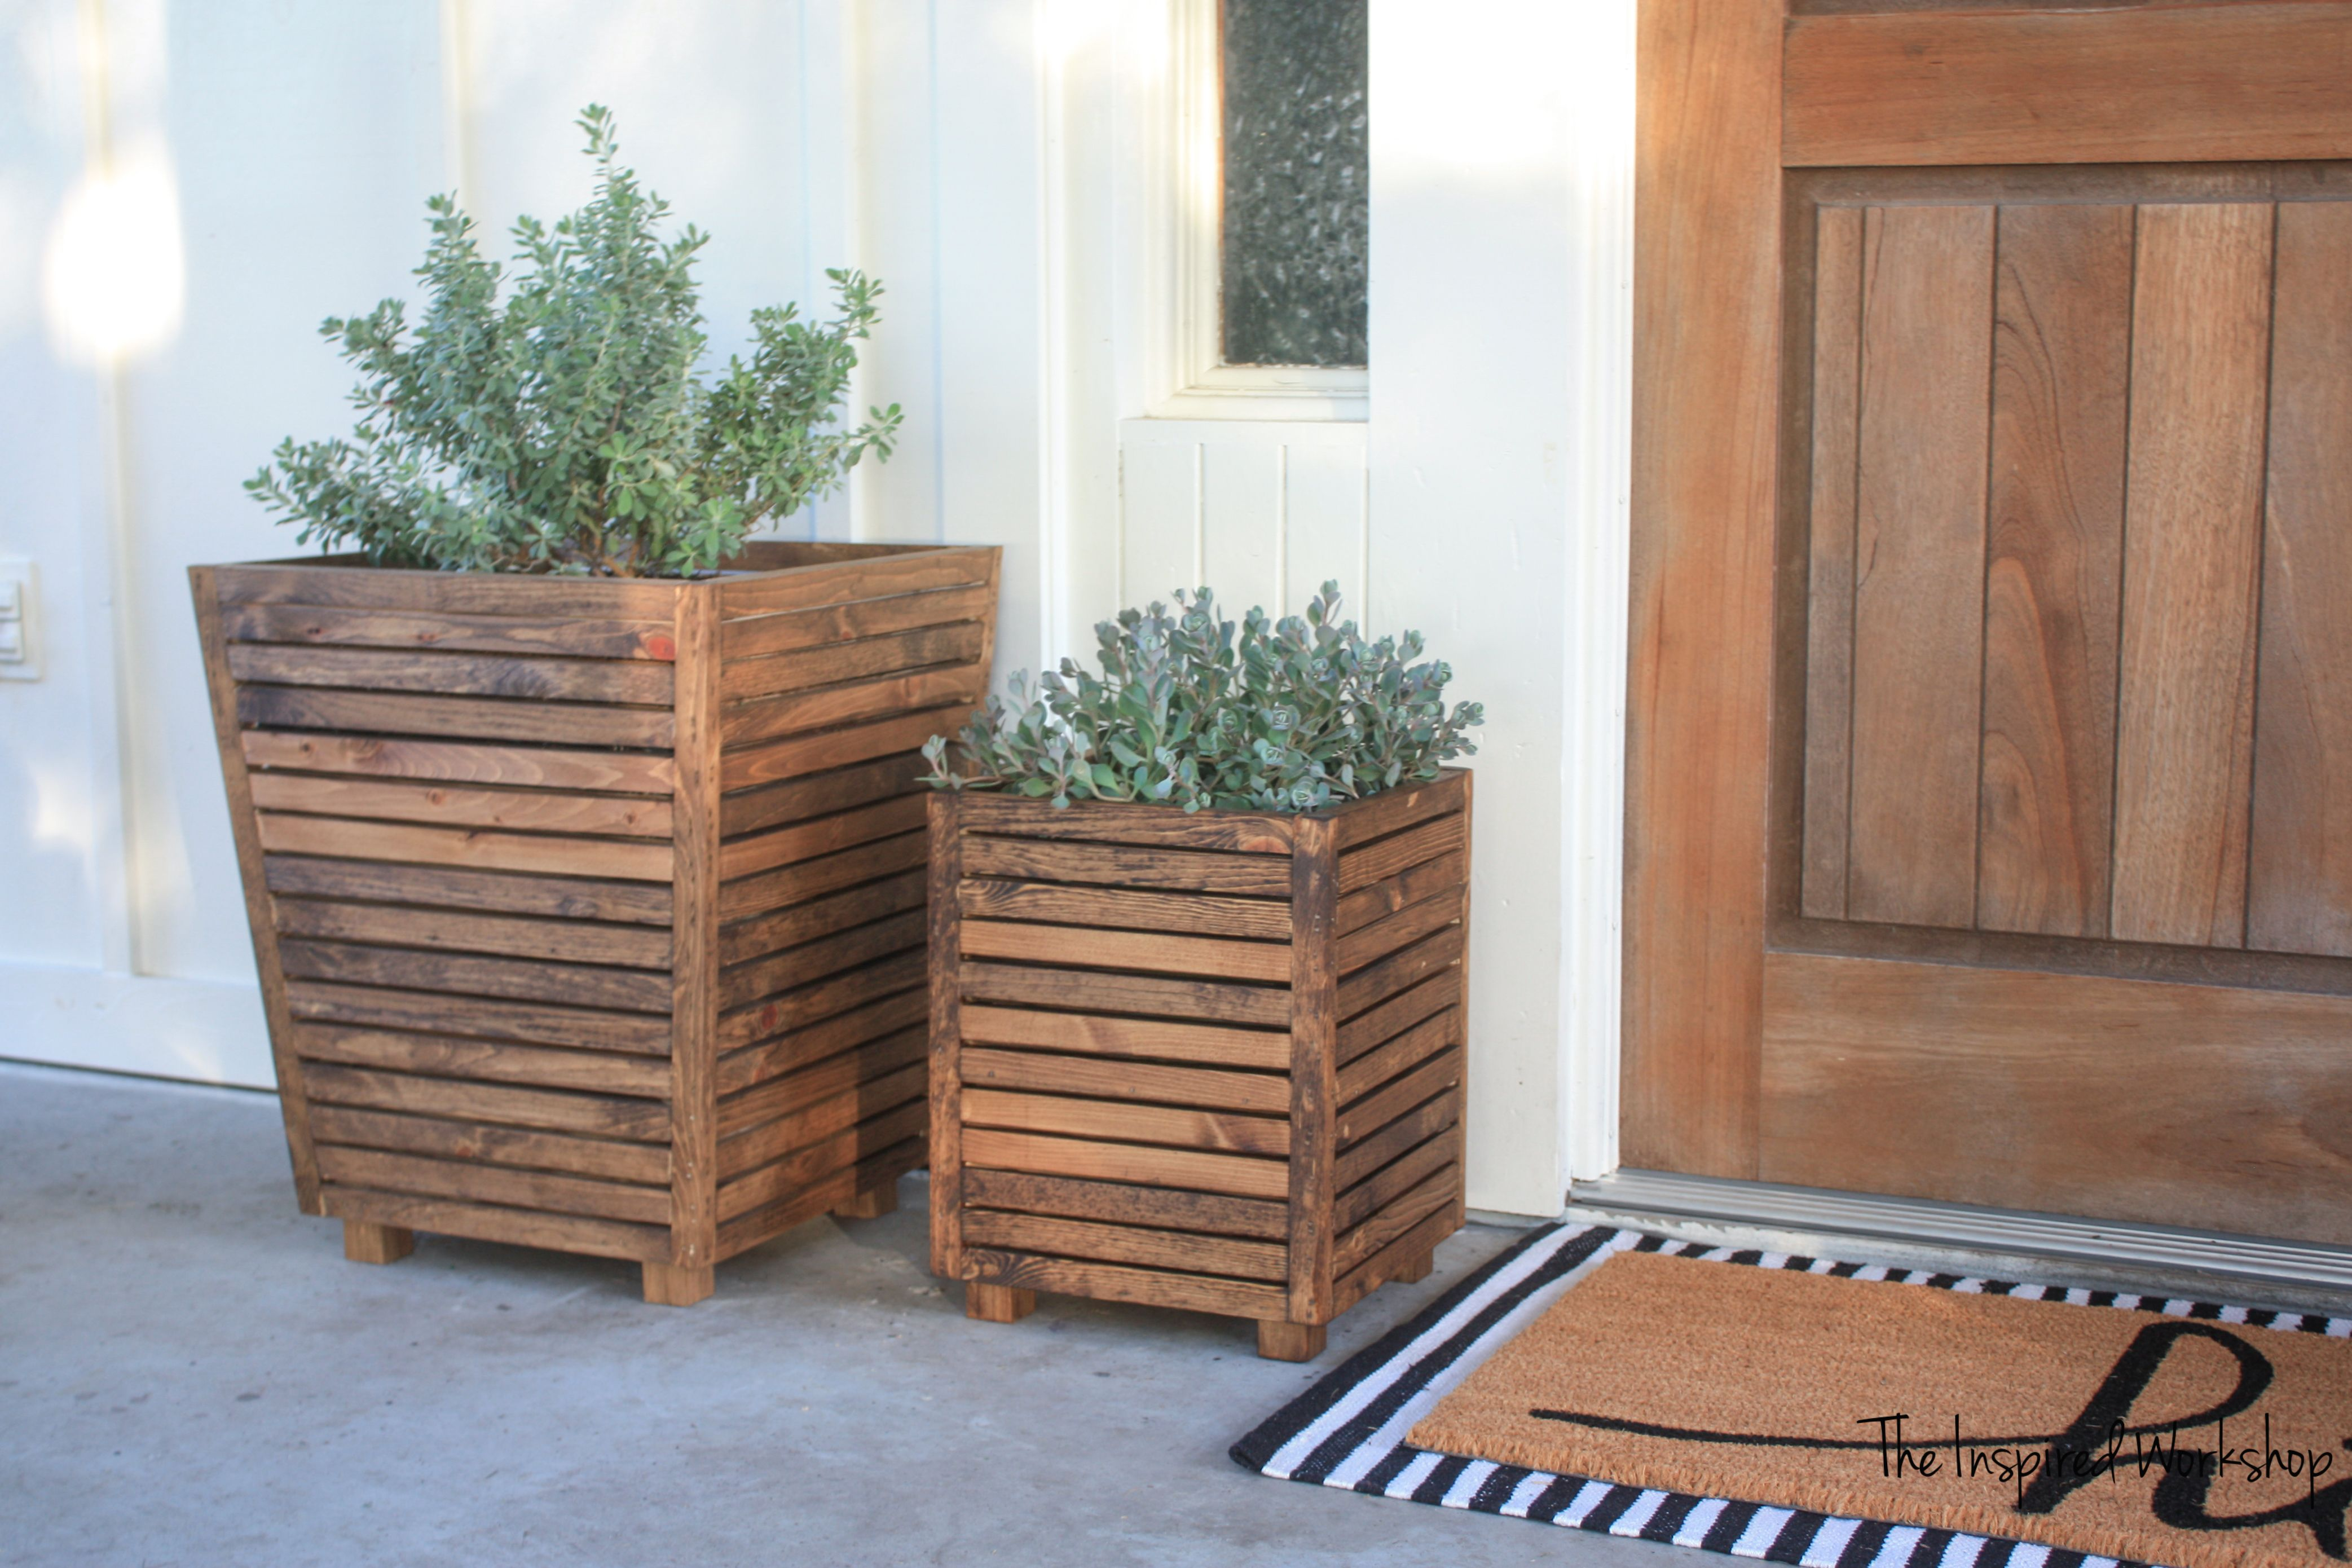 Diy Scrap Wood Outdoor Planter With Images Outdoor Planters Wood Wood Planters